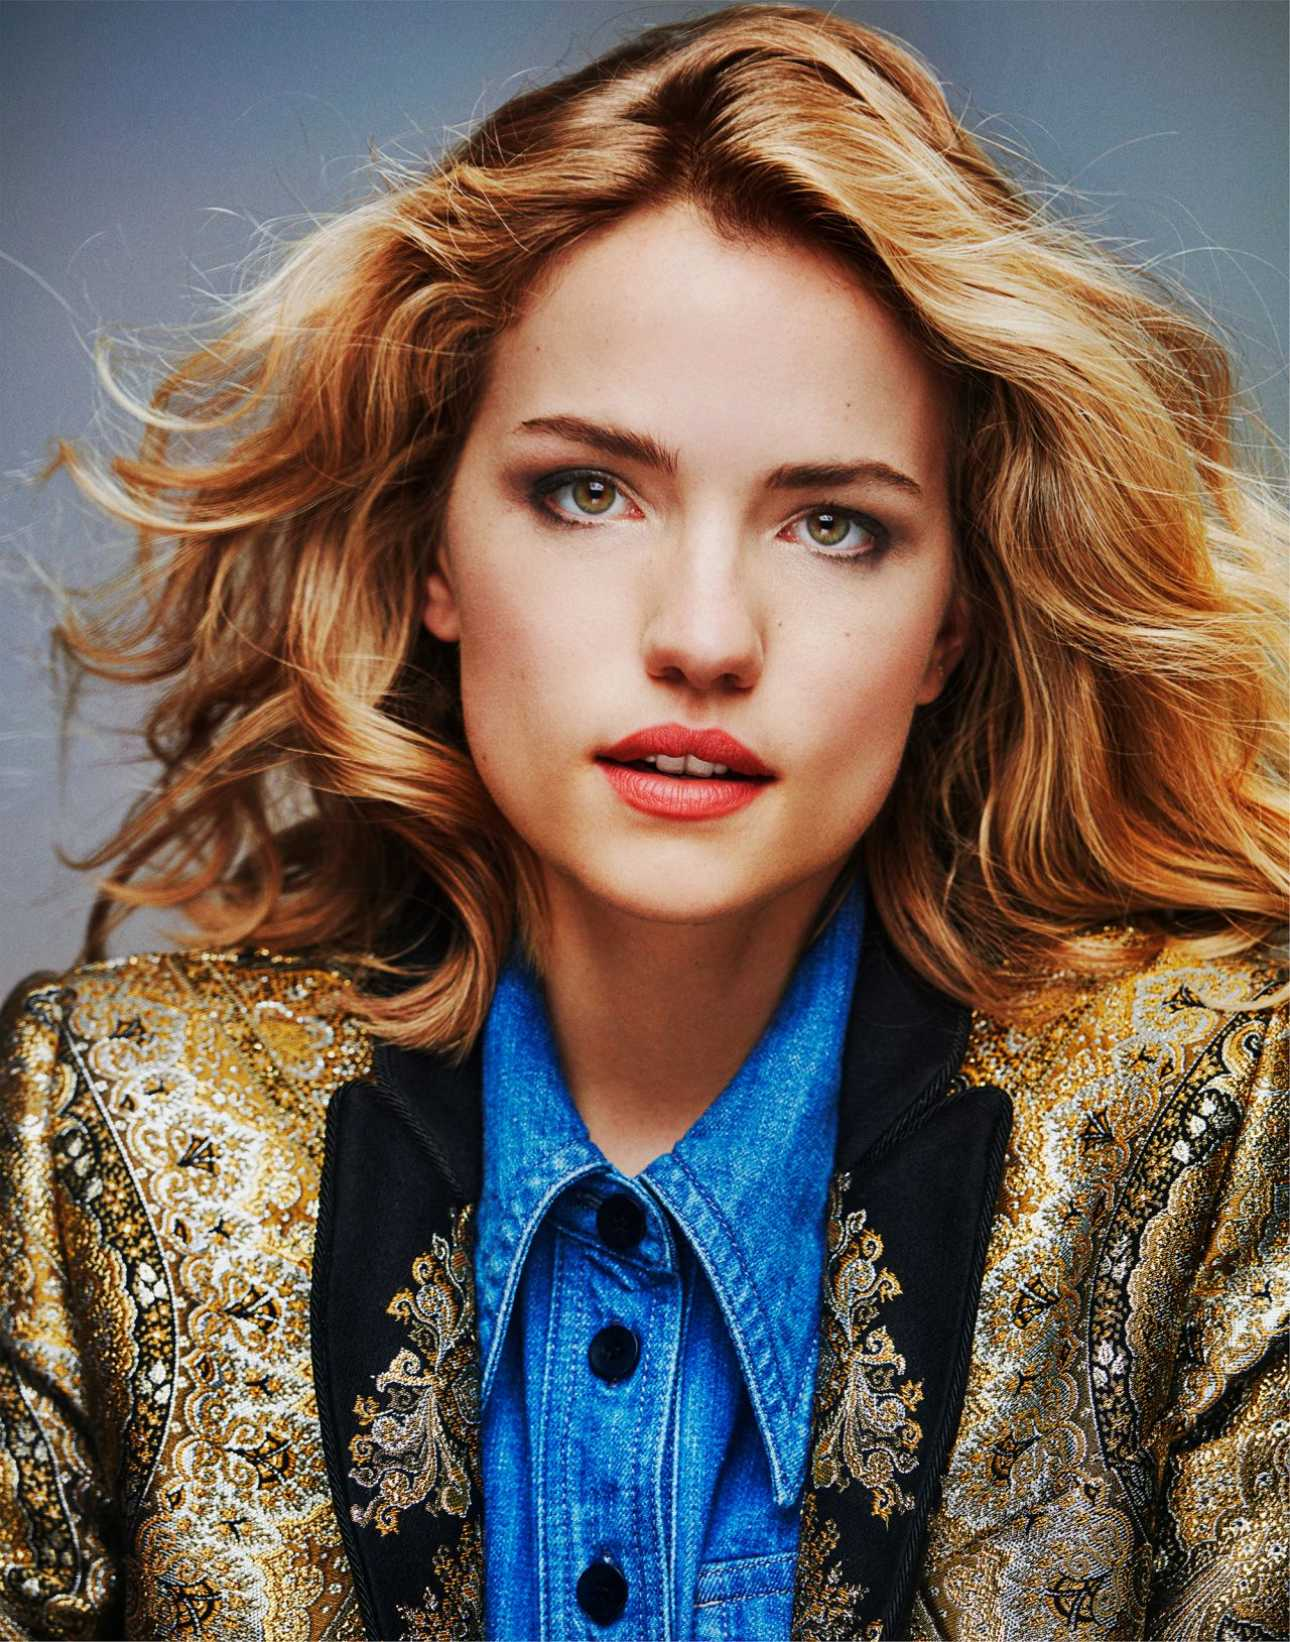 Willa Fitzgerald - Photoshoot for SBJCT Journal